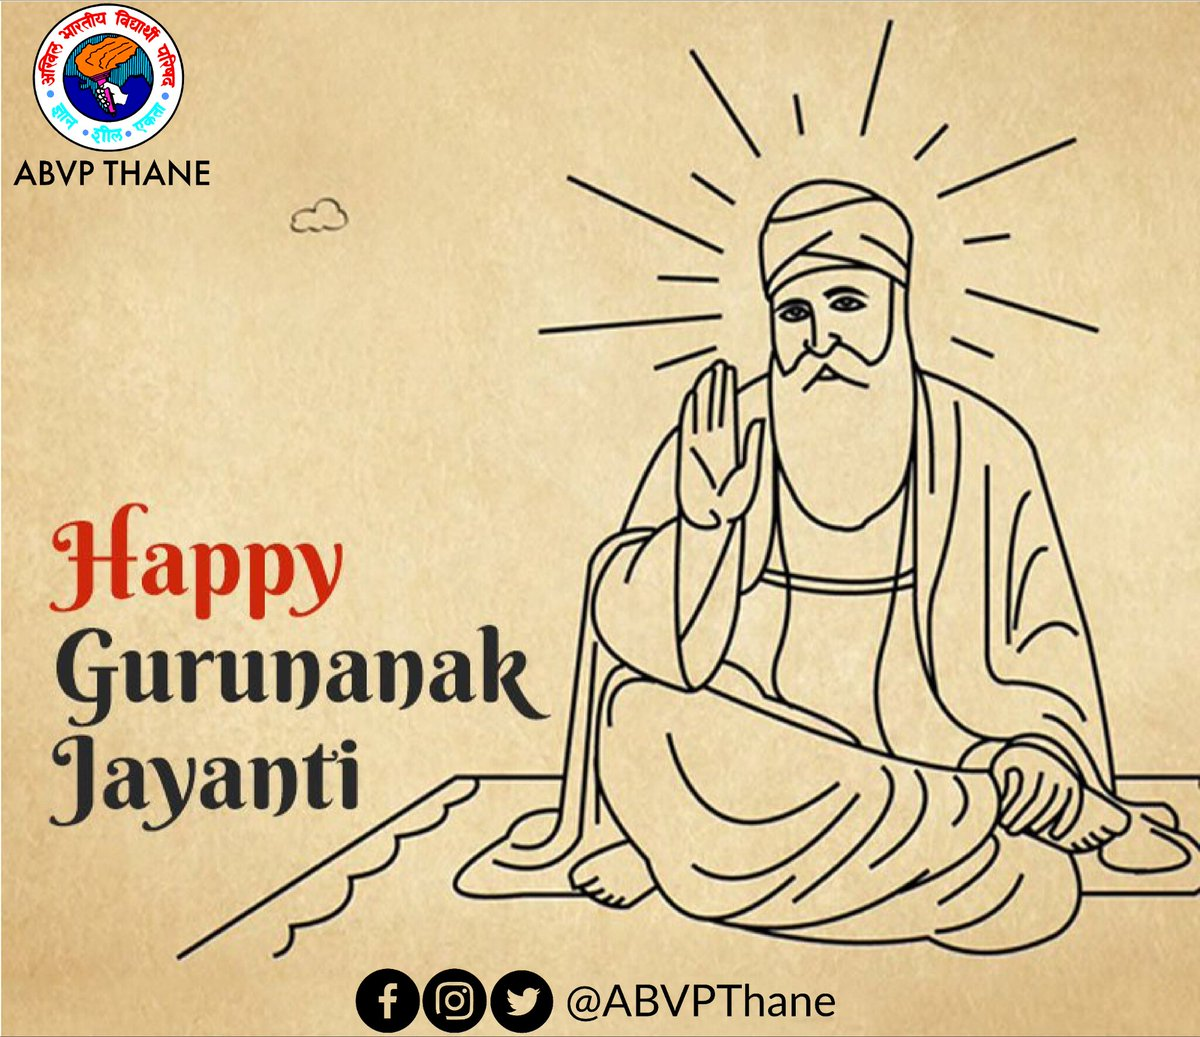 May his teachings lead us on the path of harmony and peace. Happy #GuruNanakJayanti to you and your loved ones. #gurupurab